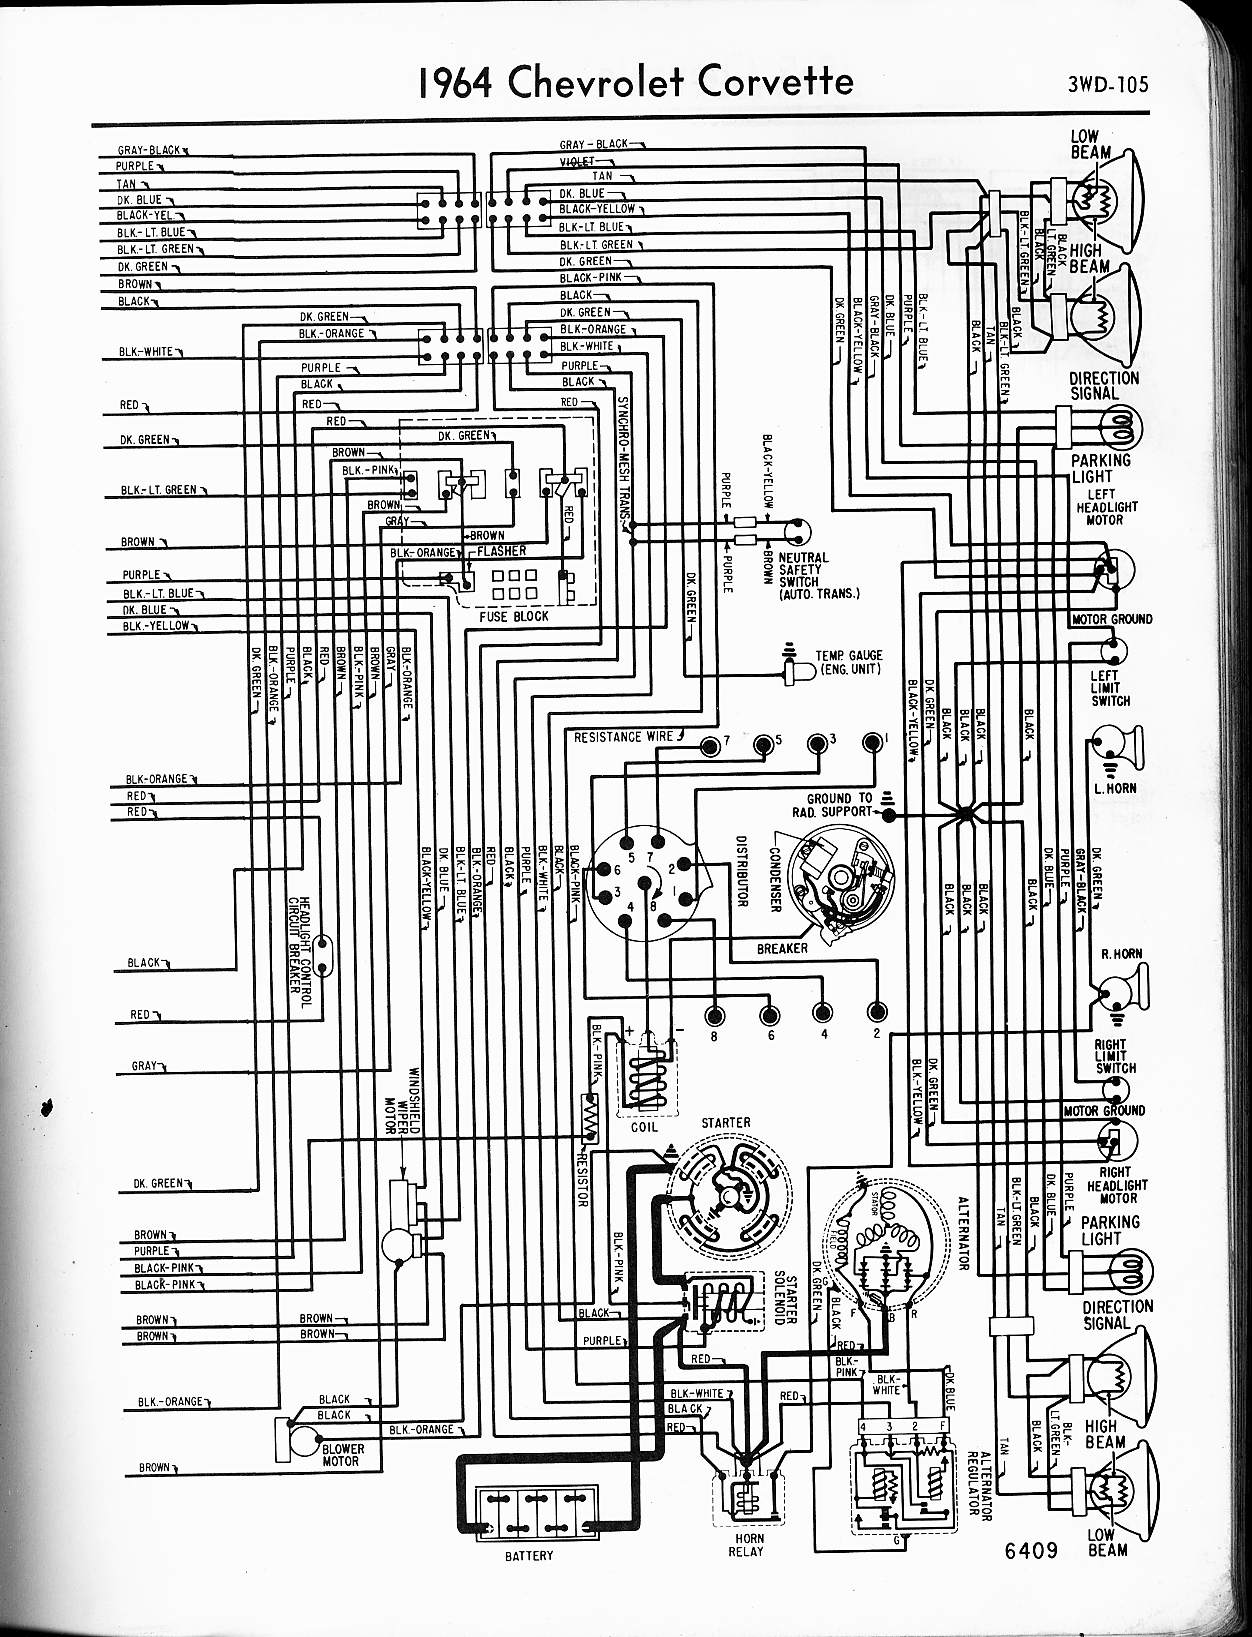 MWireChev64_3WD 105 1964 impala wiring diagram efcaviation com 1964 chevy wiring diagram at soozxer.org